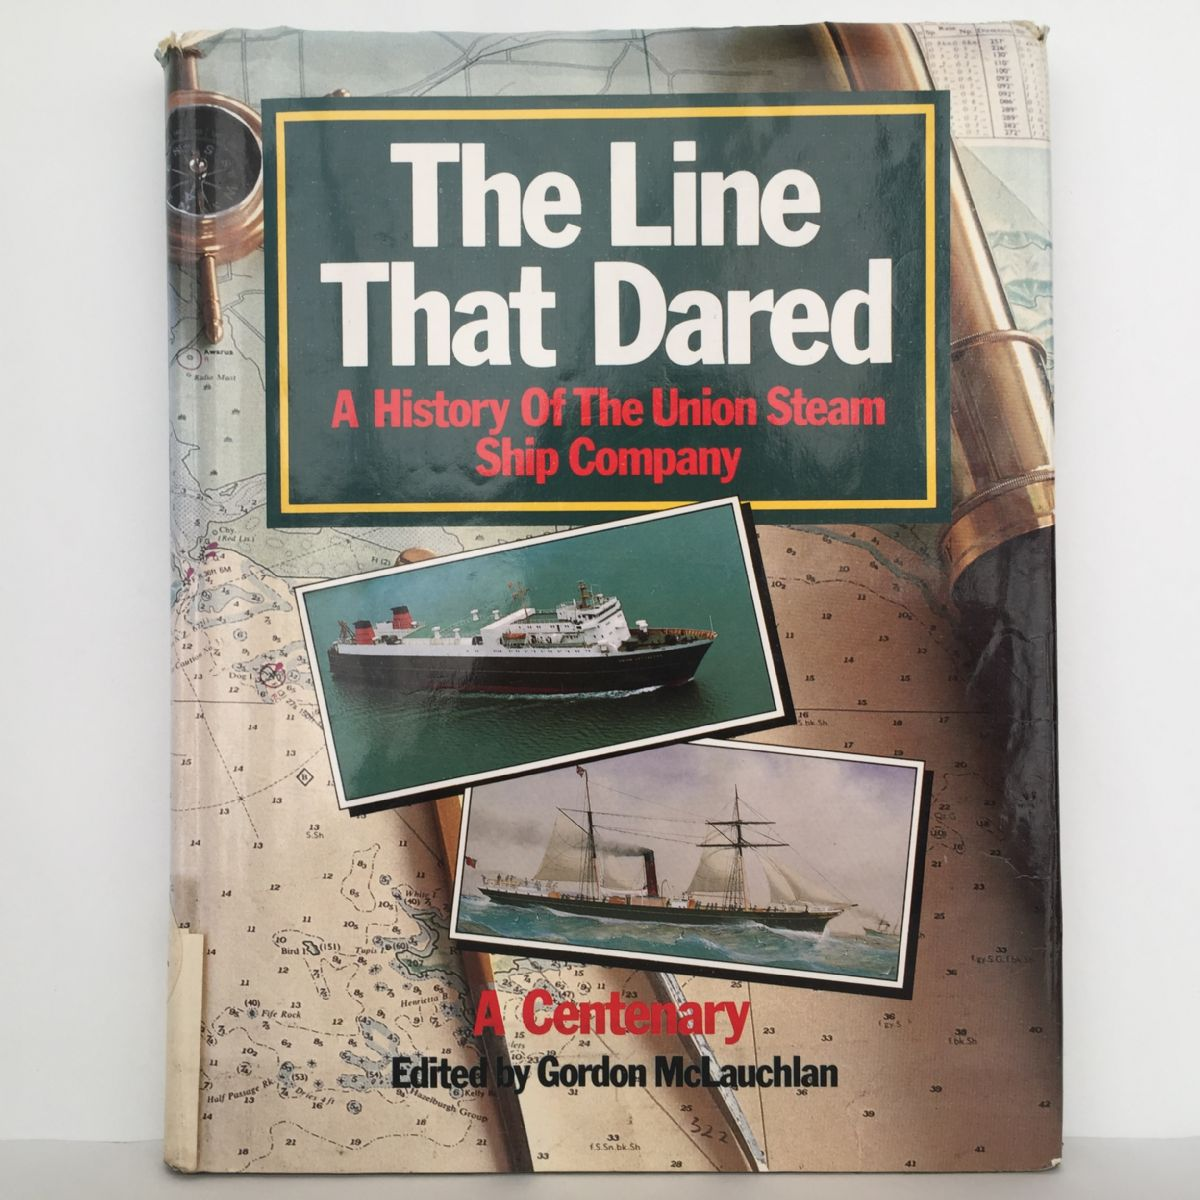 The Line That Dared: A History of the Union Steam Ship Company